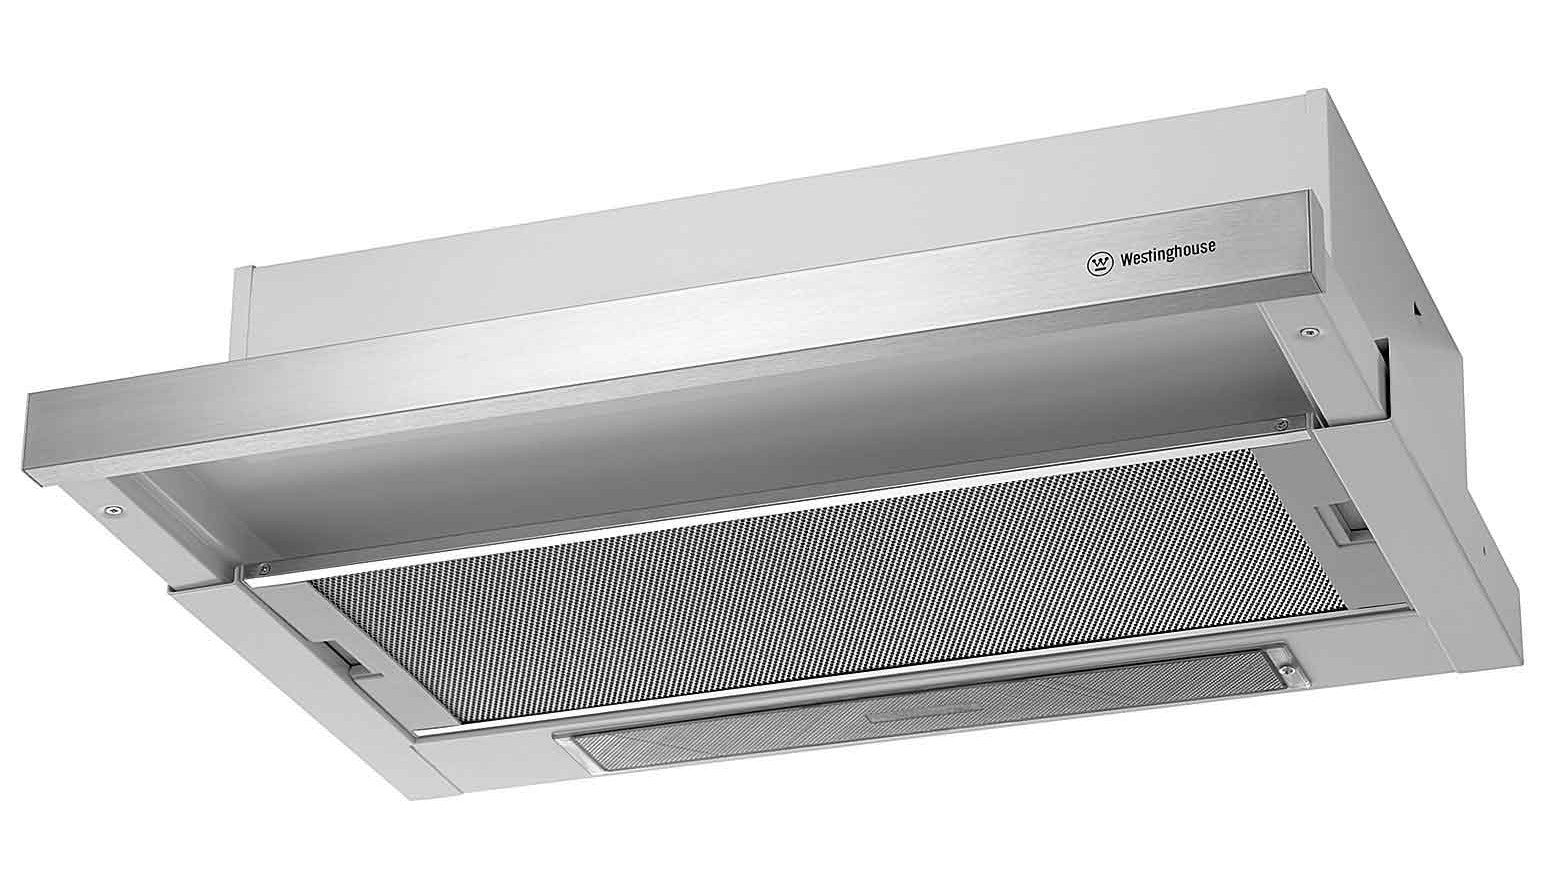 Westinghouse WRH605IS 60cm Slide Out Rangehood